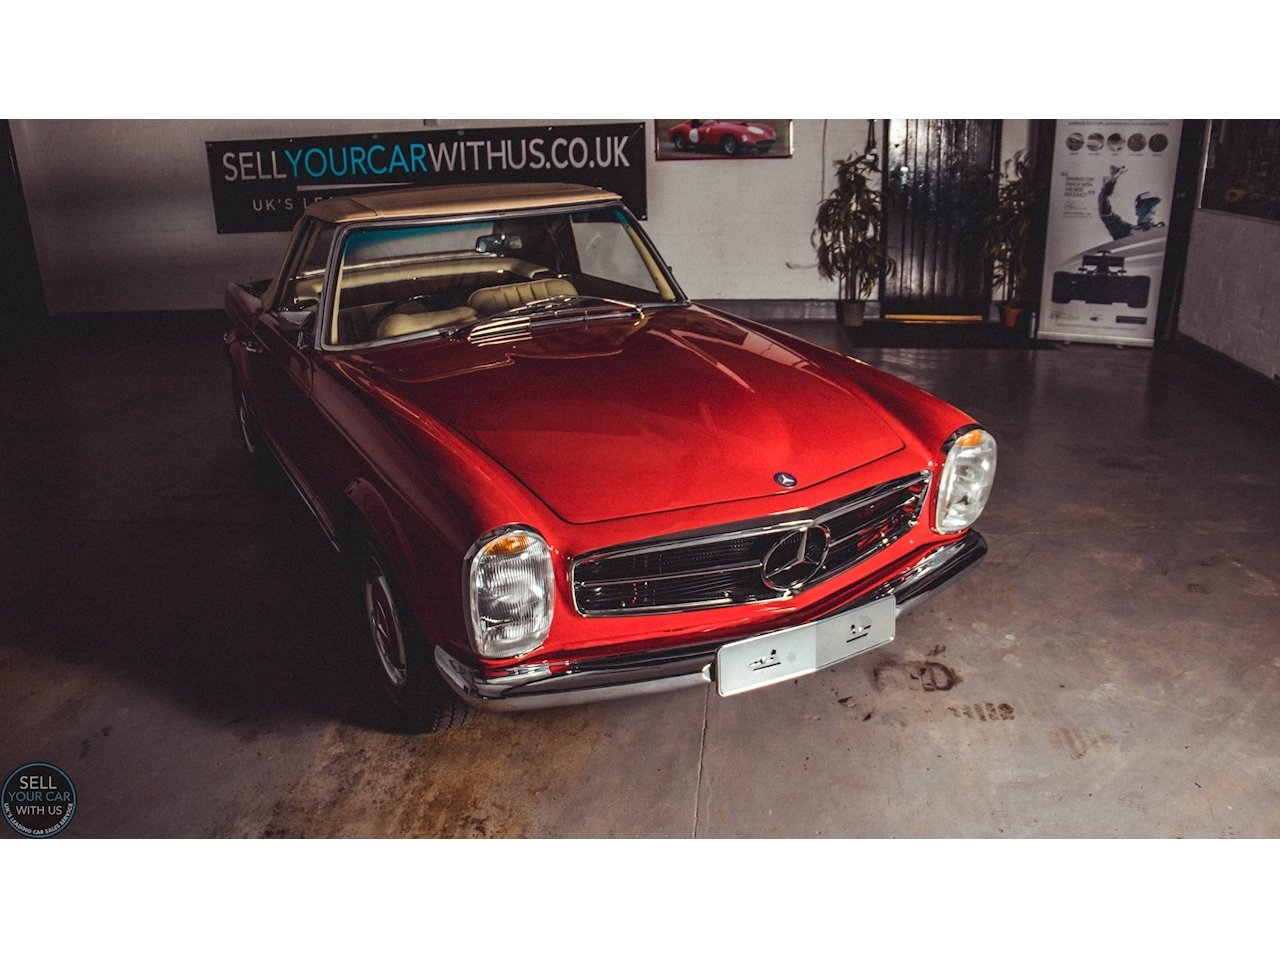 1967 Mercedes 250 SL PAGODA 2.5 2dr Convertiable Manual Petrol For Sale (picture 2 of 6)